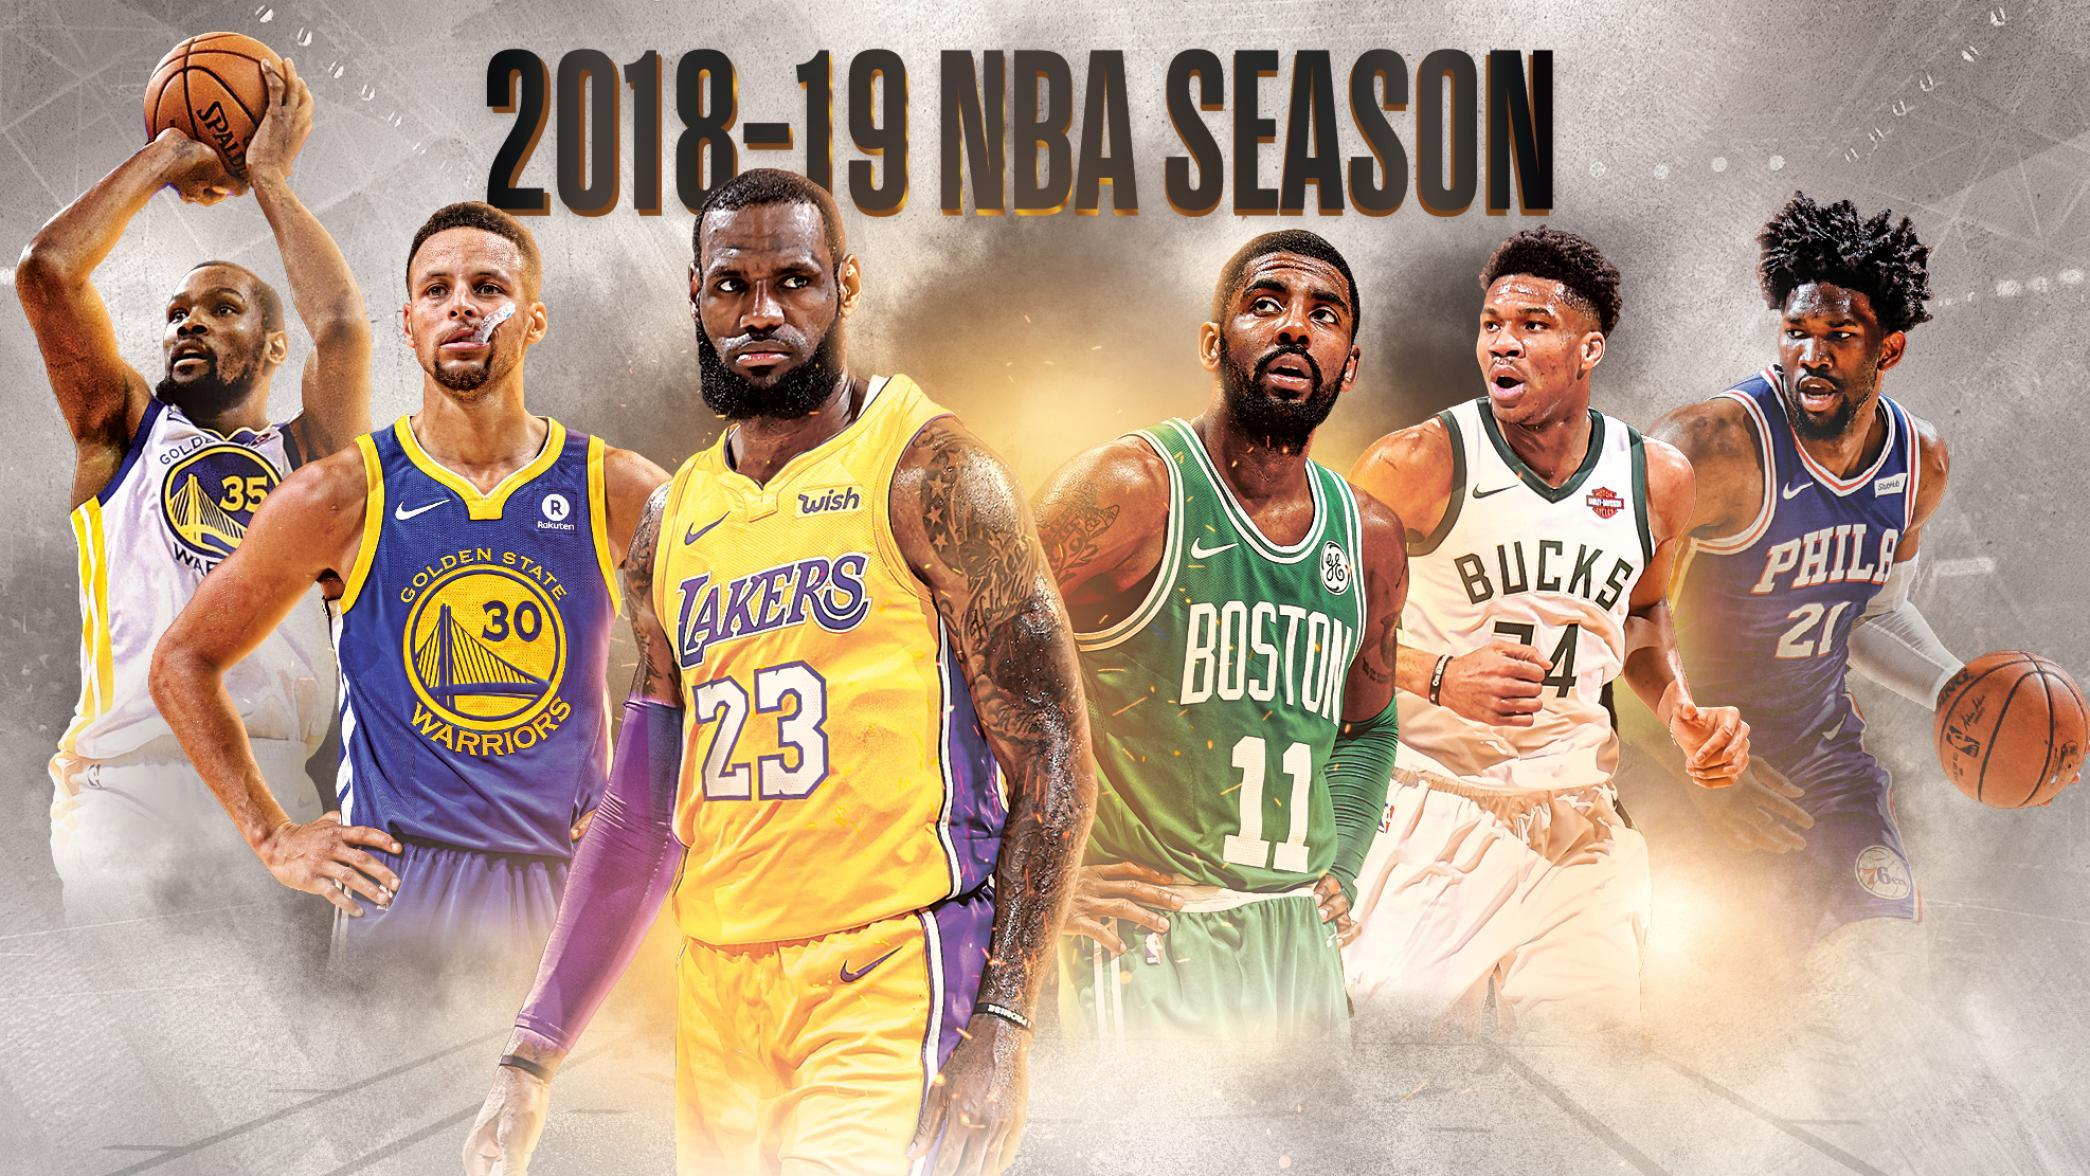 nba unveils 2018-19 national tv schedule for opening week, christmas